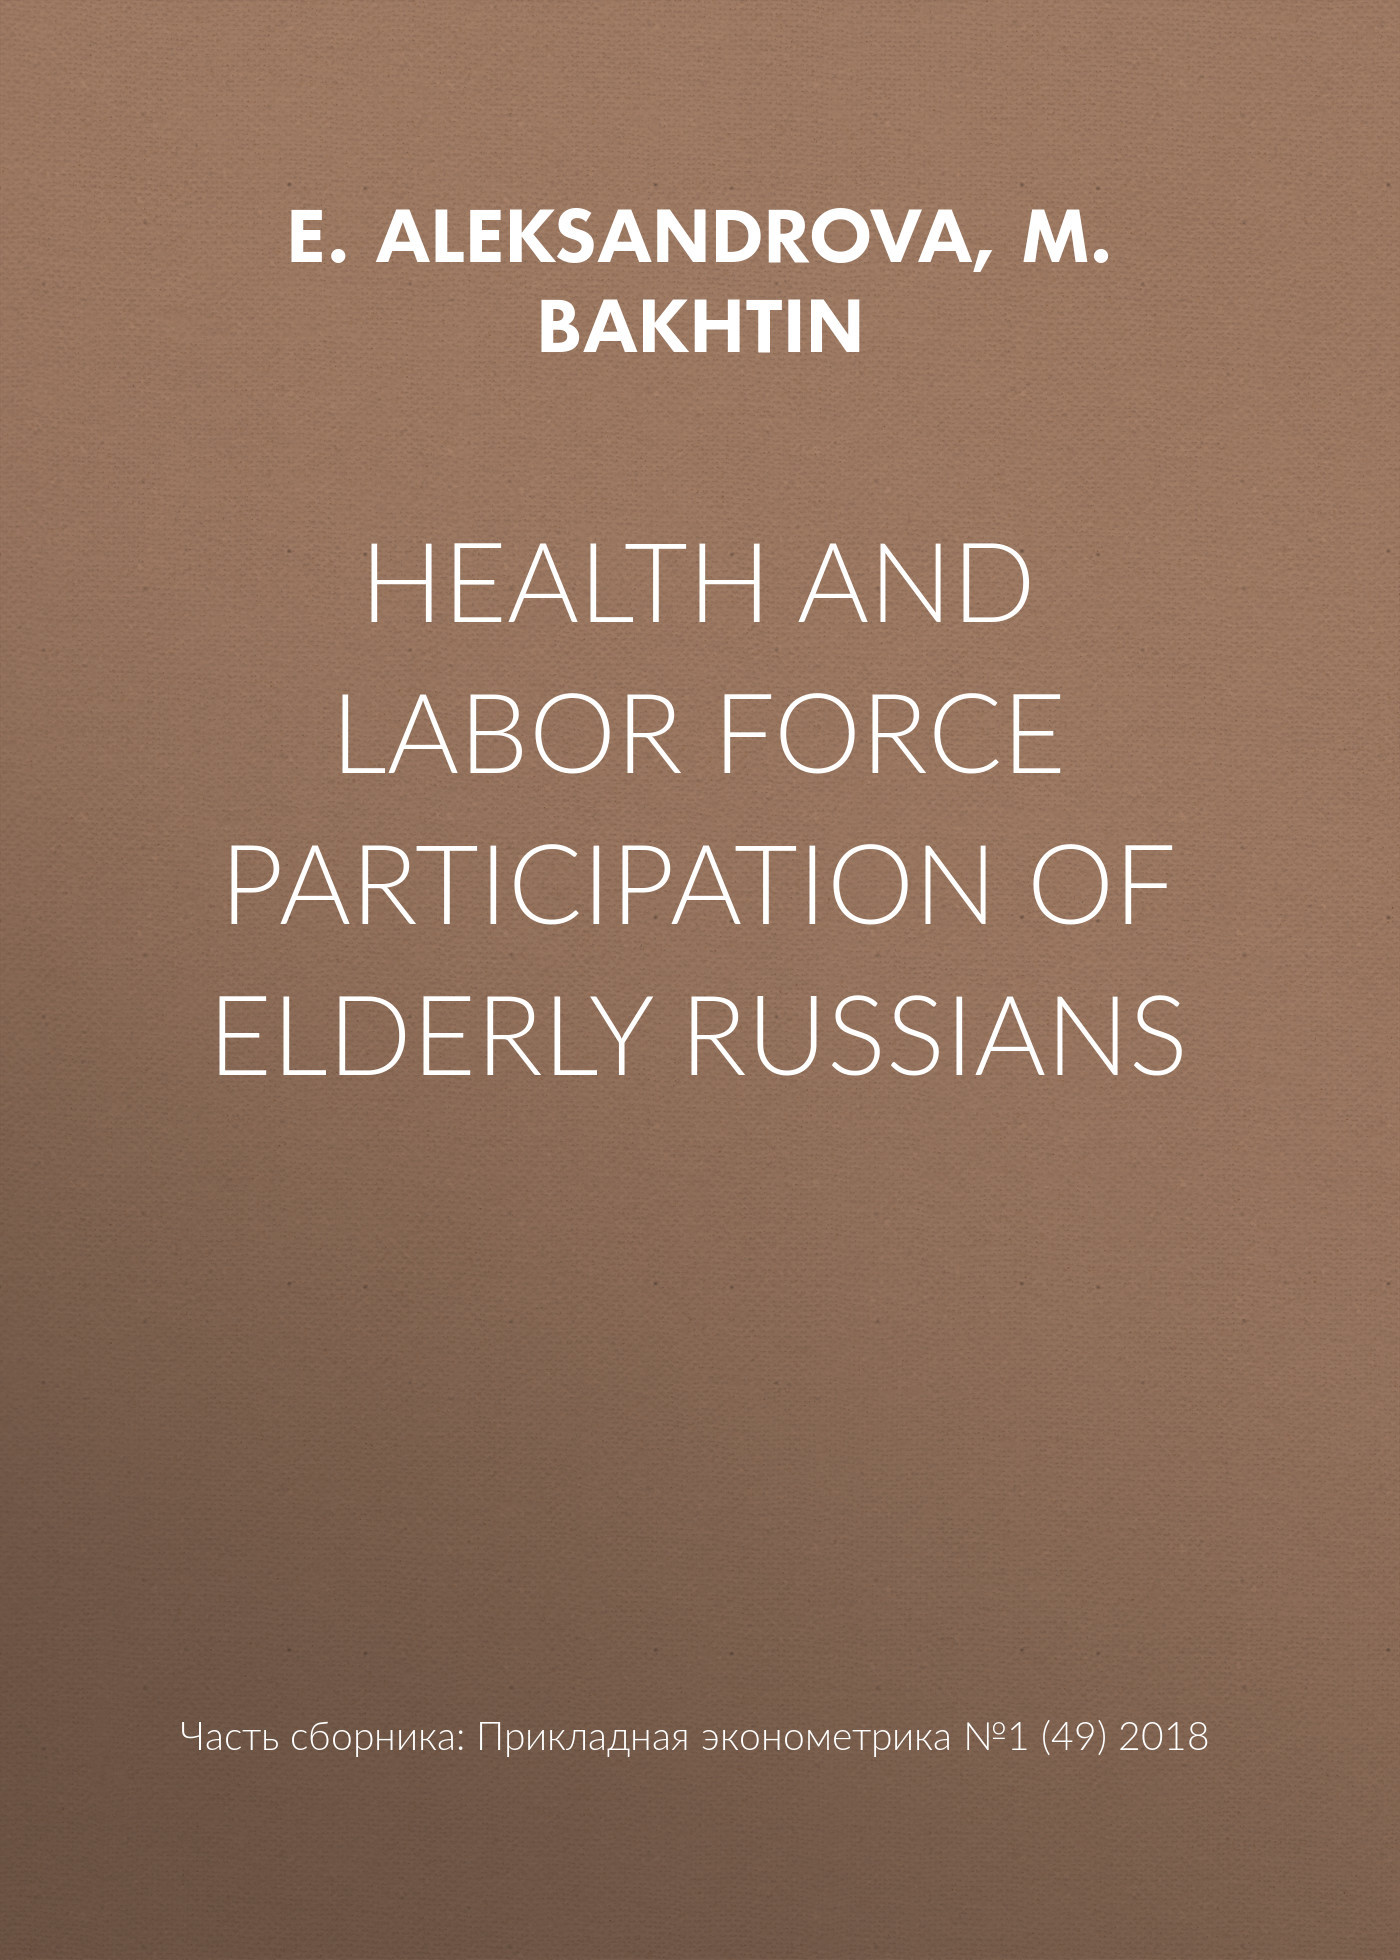 E. Aleksandrova Health and labor force participation of elderly Russians anupam khanna effect of thermal gradient on vibrations of tapered plates